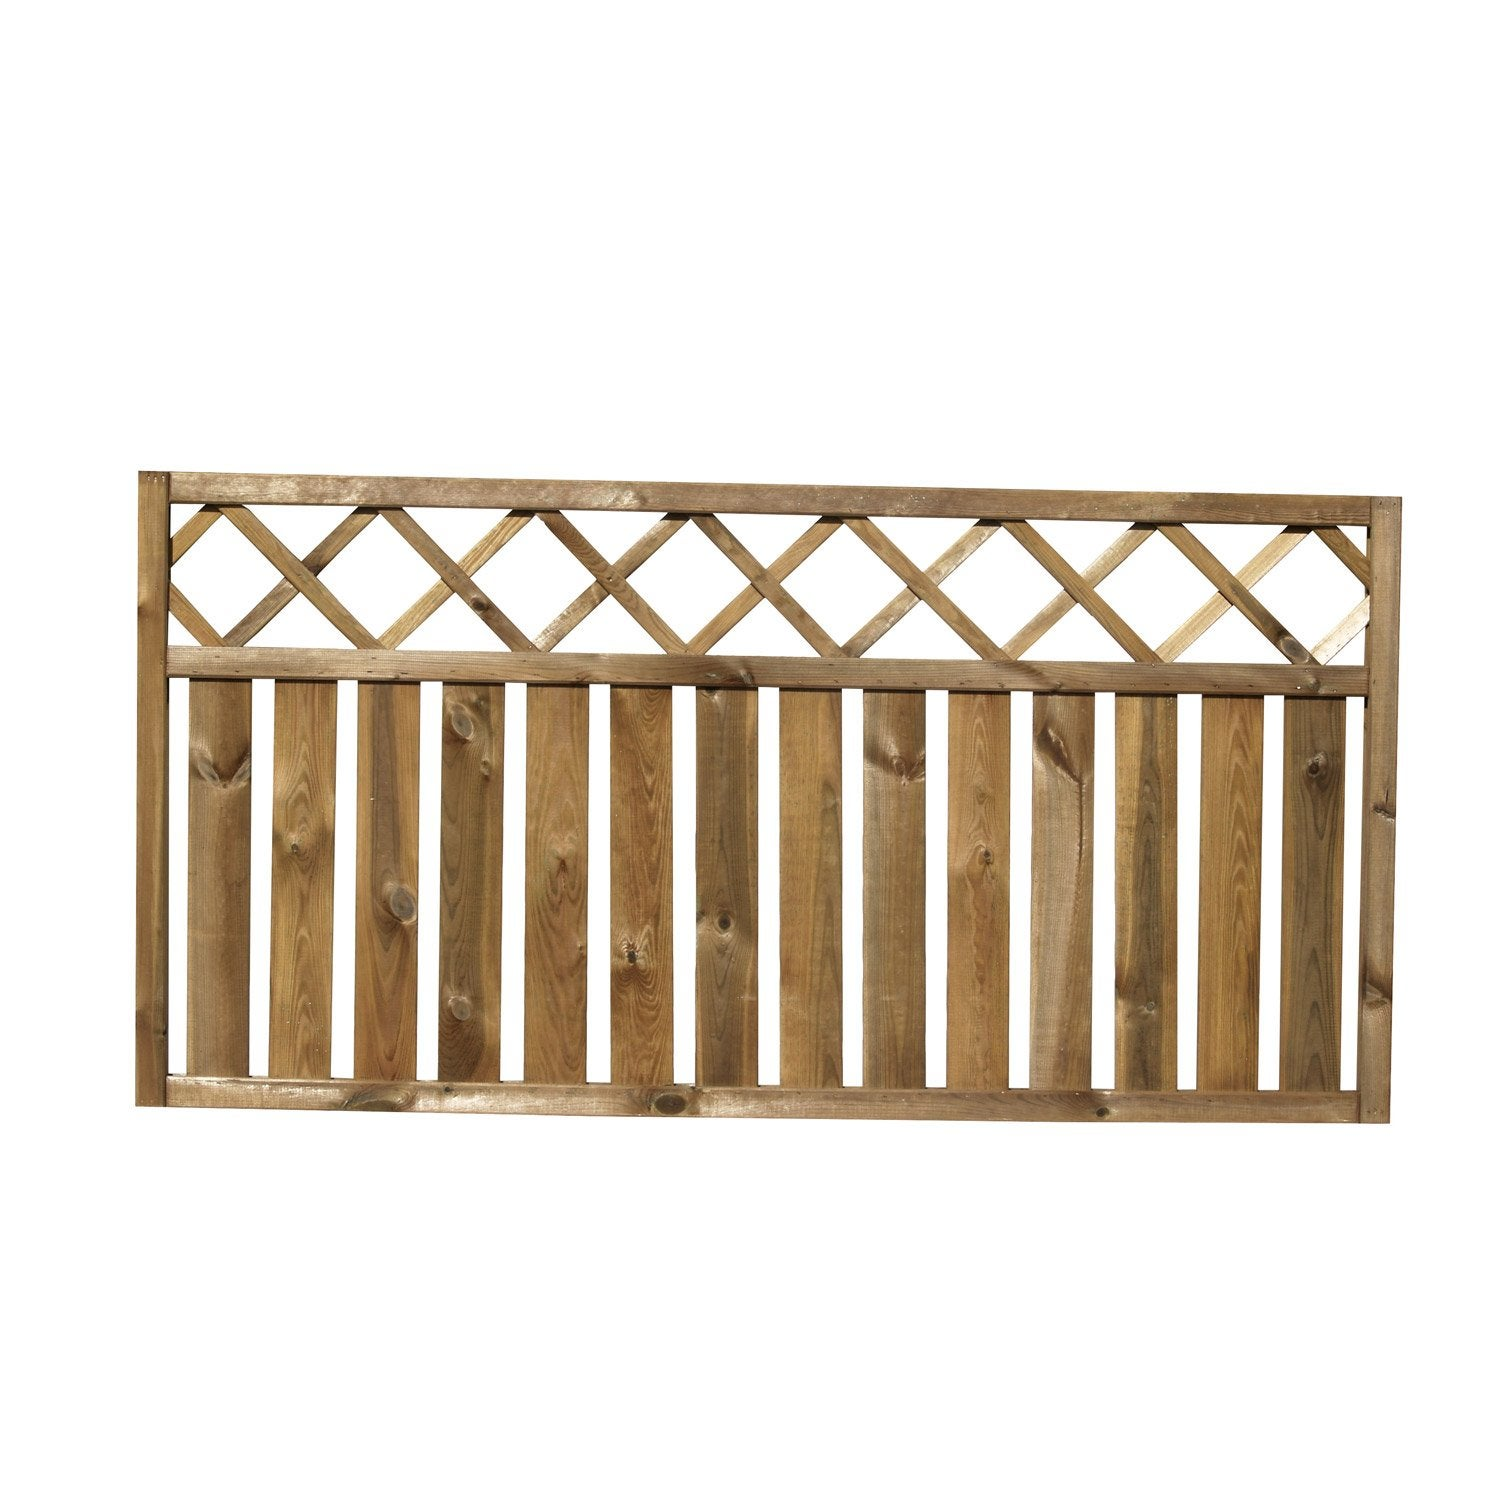 Barri re bois pinto naturel x cm leroy merlin for Barriere jardin bois